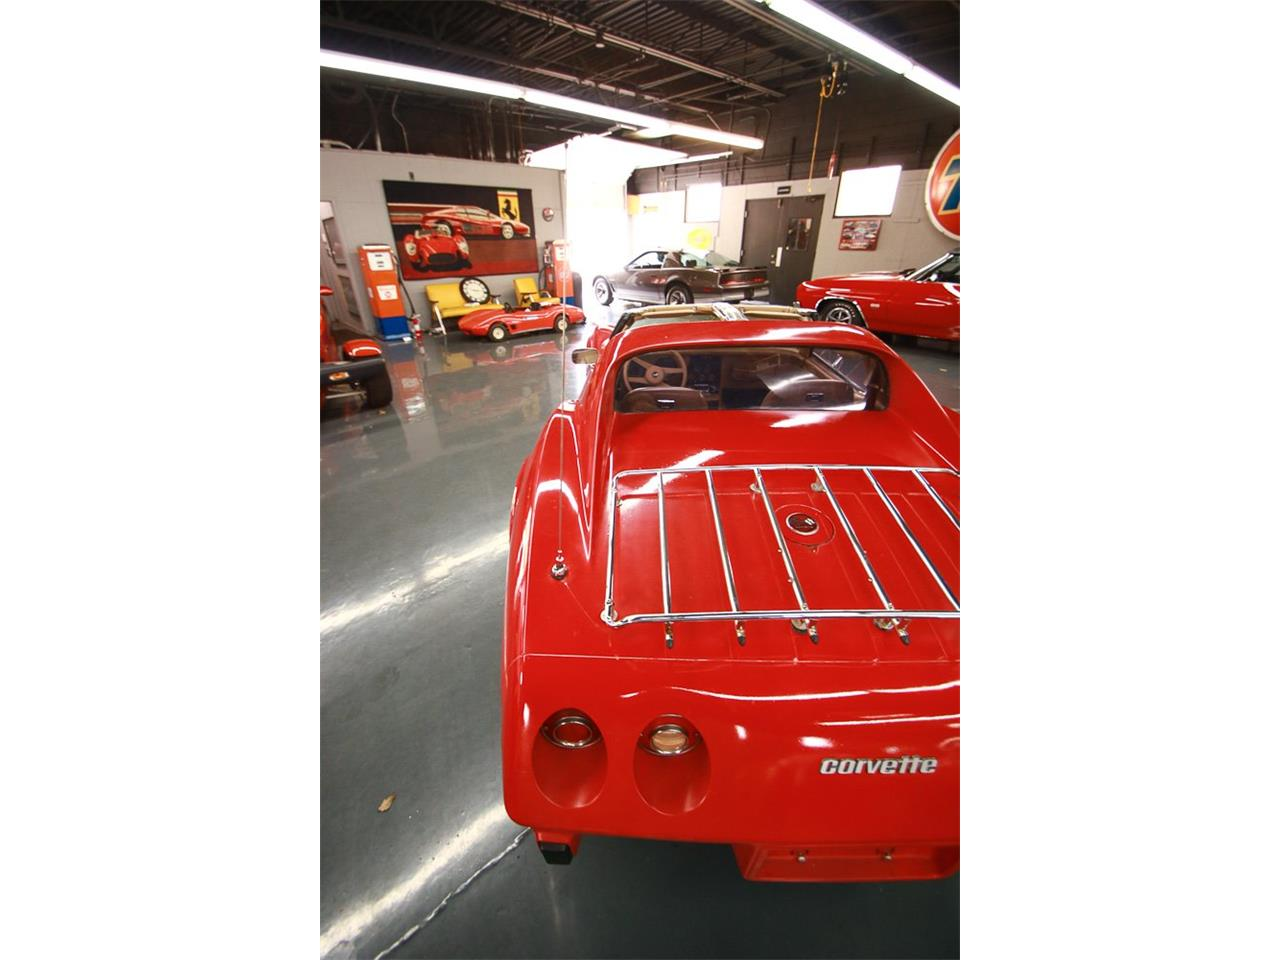 Large Picture of 1976 Chevrolet Corvette located in Ohio - $9,900.00 Offered by Seven Hills Motorcars - QHTE